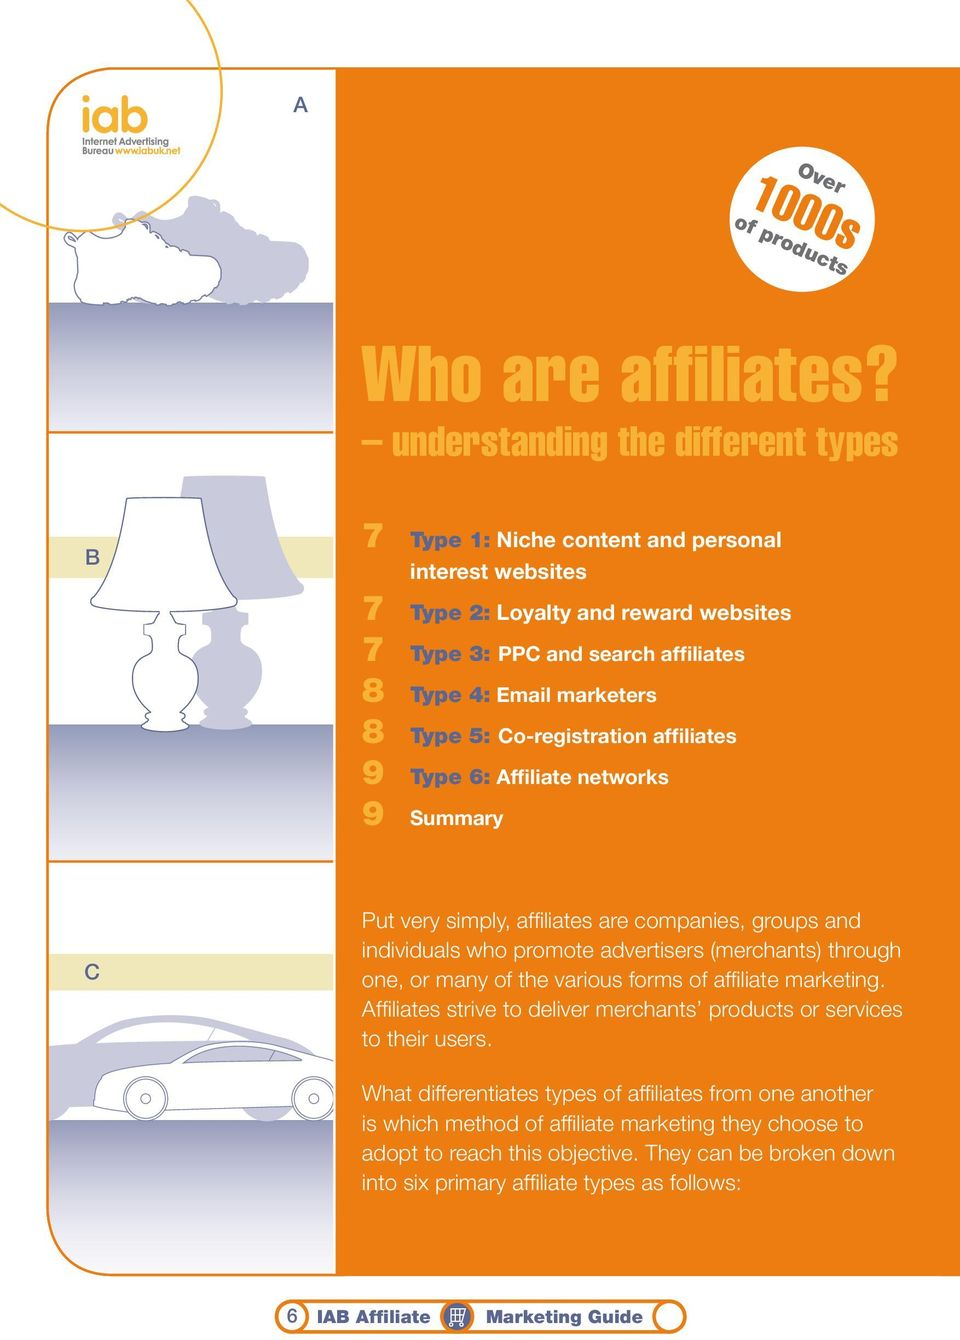 5: Co-registration affiliates 9 Type 6: Affiliate networks 9 Summary C Put very simply, affiliates are companies, groups and individuals who promote advertisers (merchants) through one, or many of